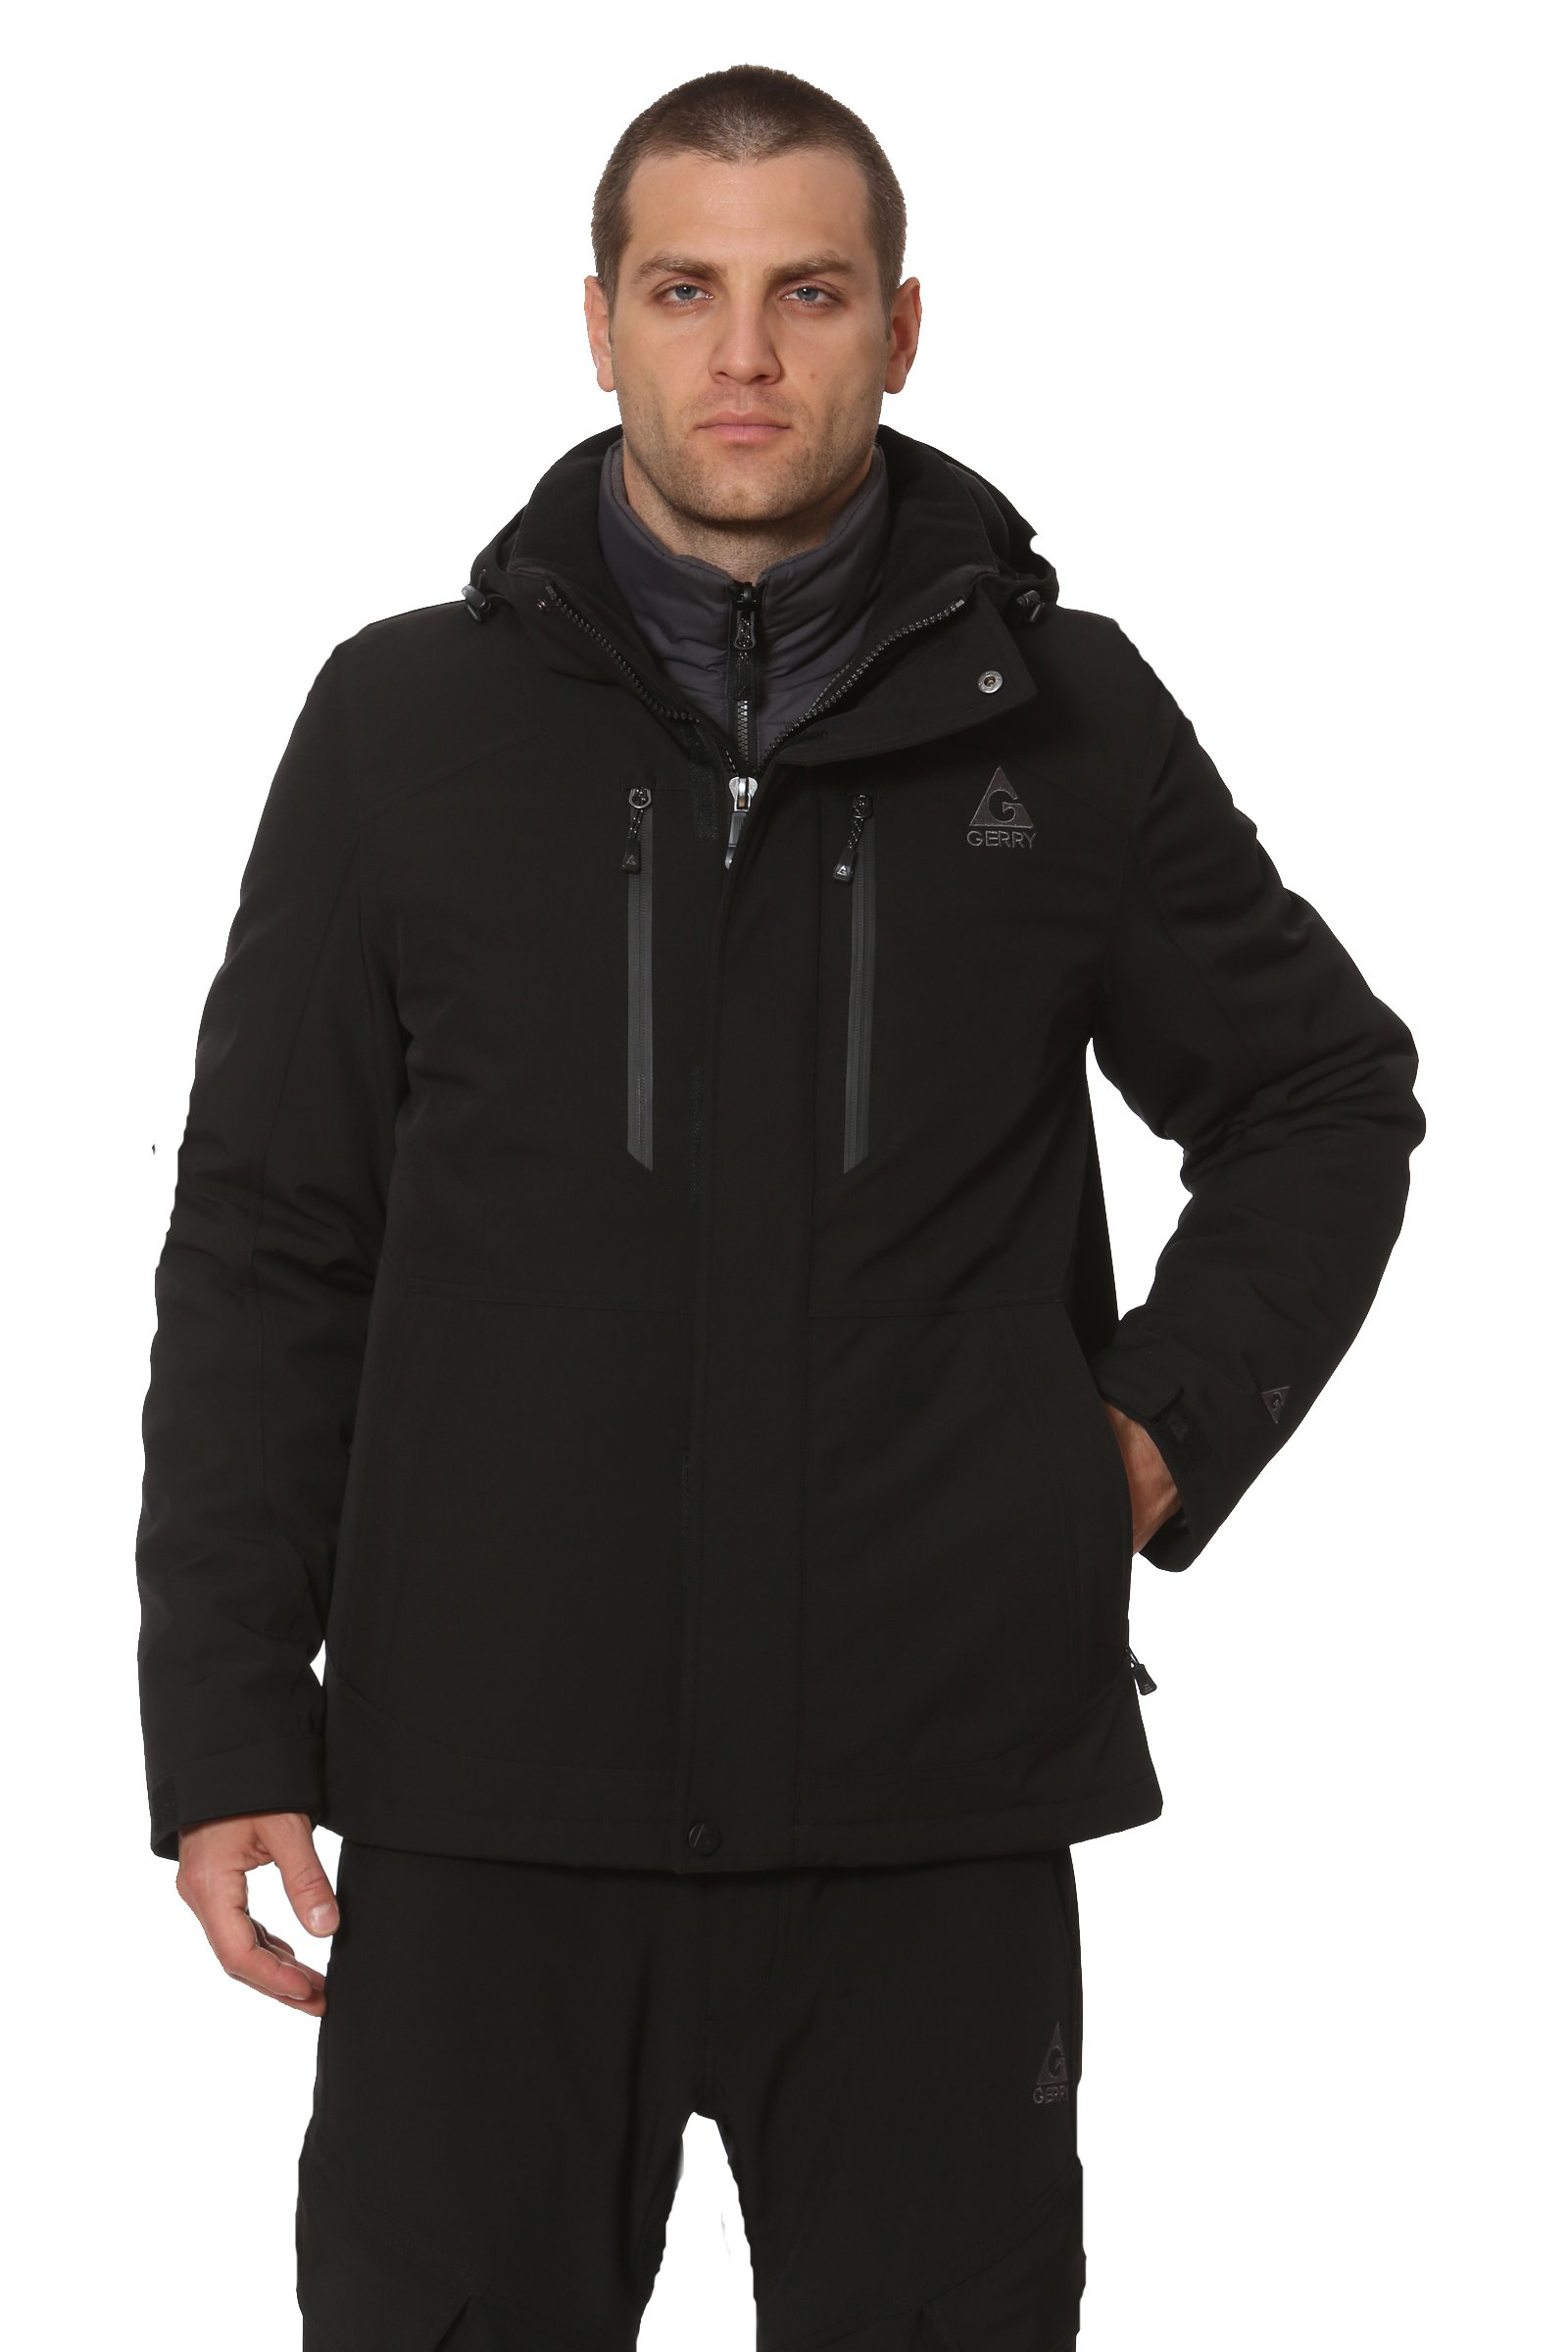 Gerry Canyon 3-in-1 Water/Wind Resistant Systems Jacket with Removable Hood and Detachable Inner Puffer (Black, Medium)